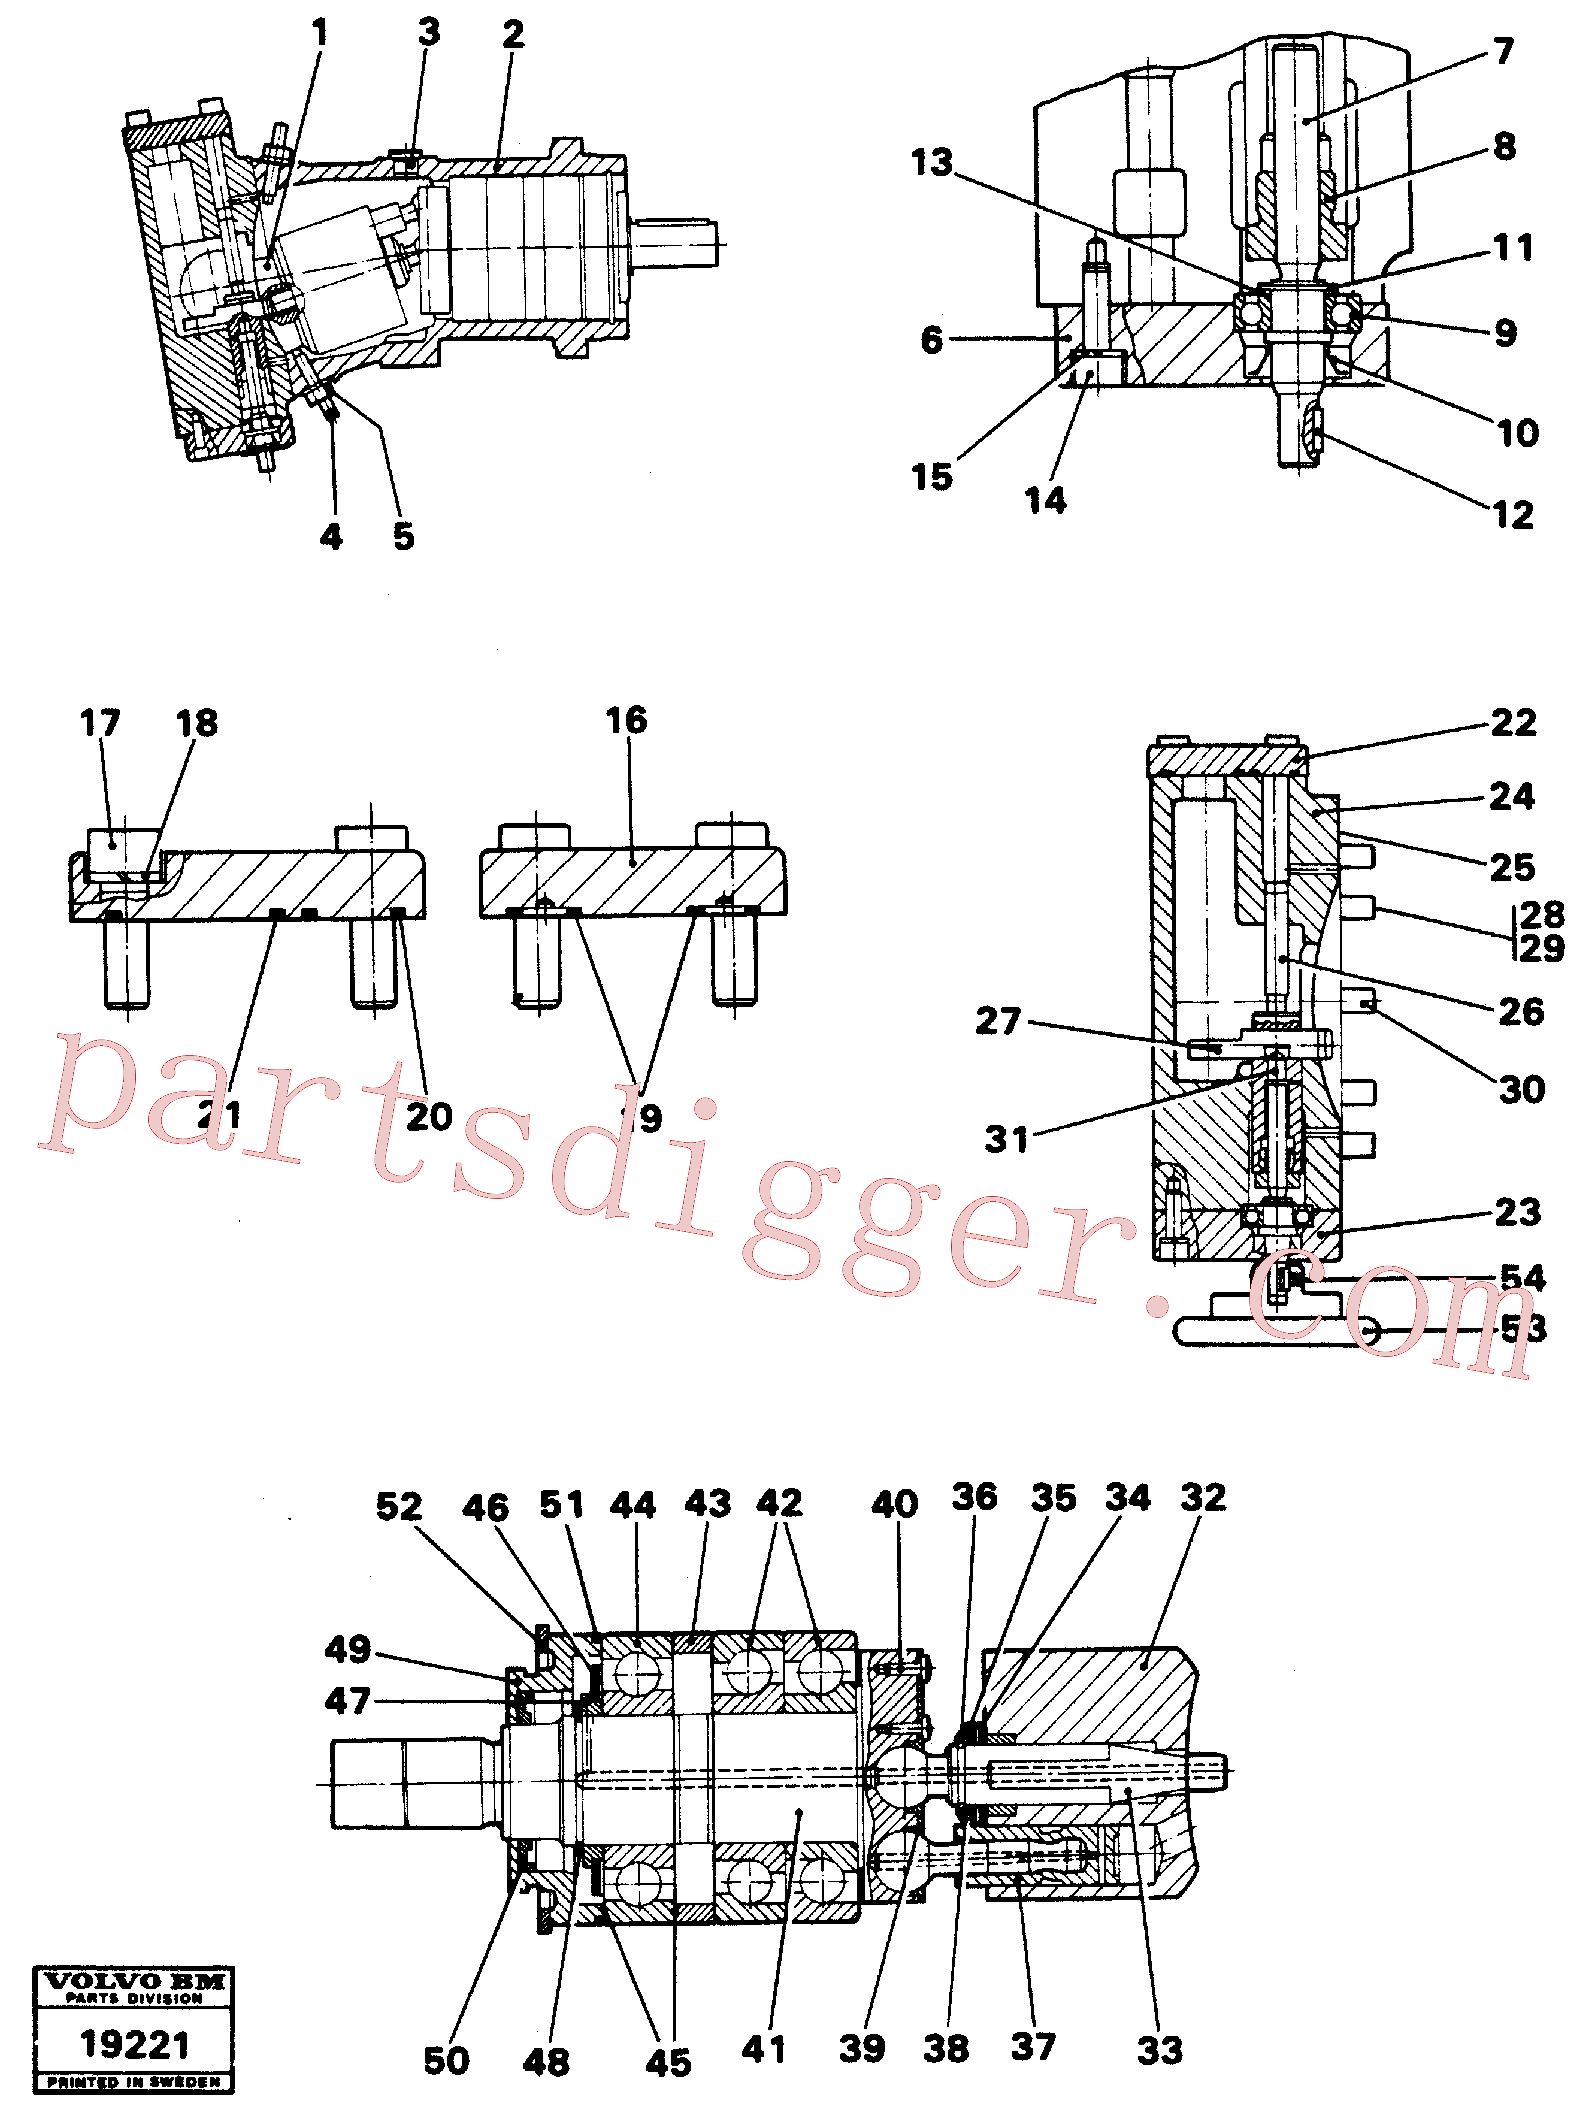 VOE914474 for Volvo Hydraulic pump(19221 assembly)